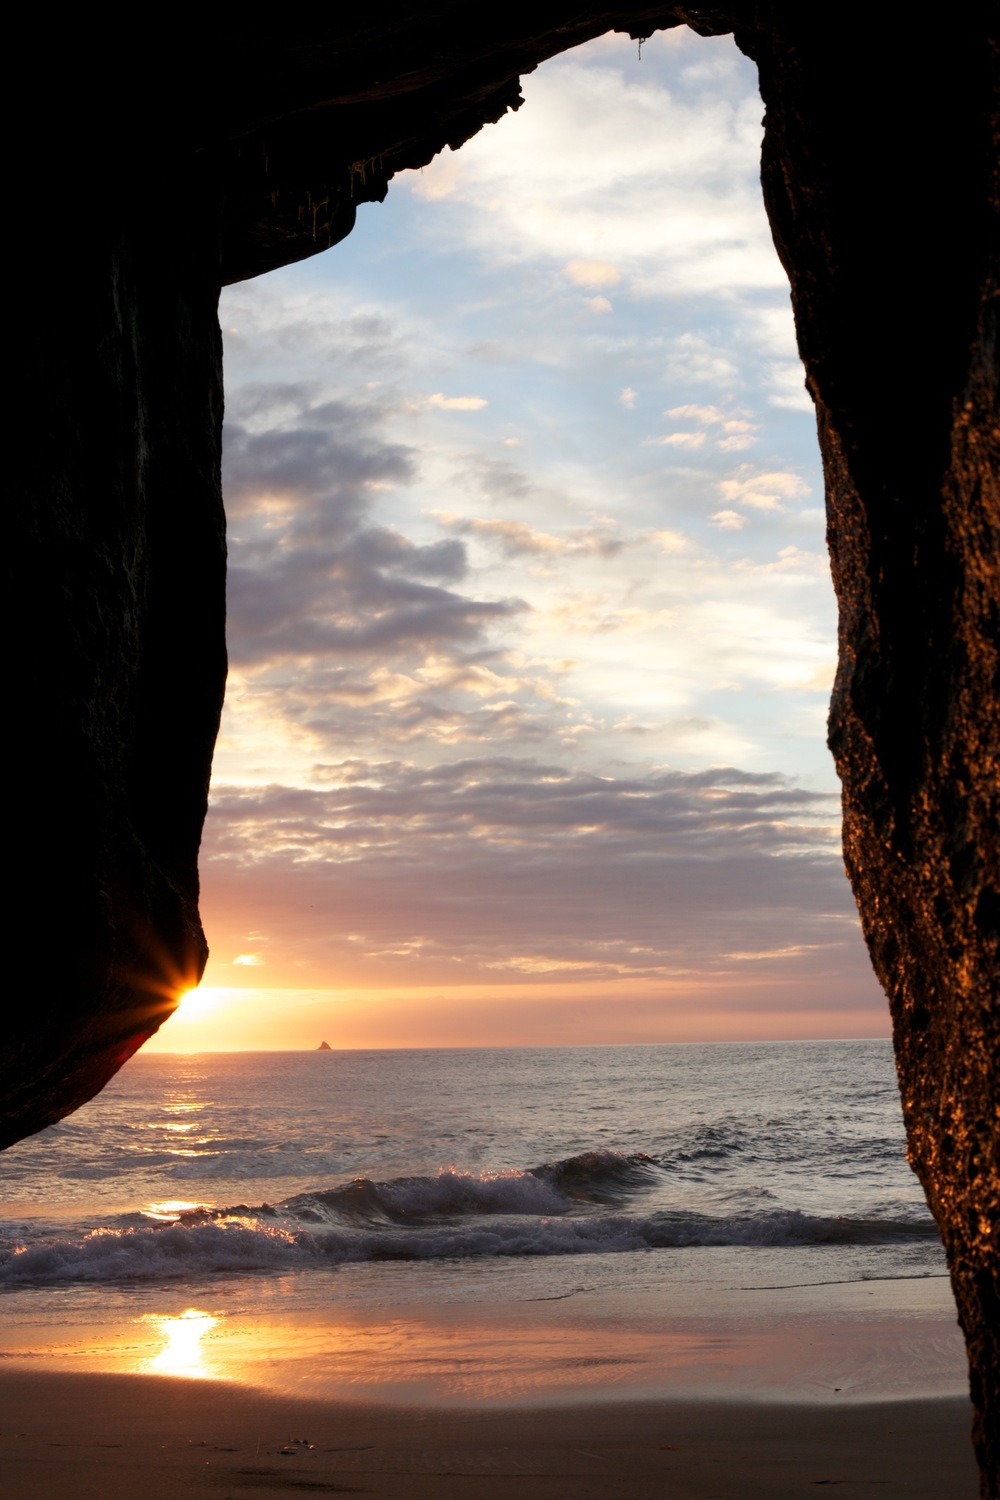 Cave at Tunnel Beach looking out onto the sunrise